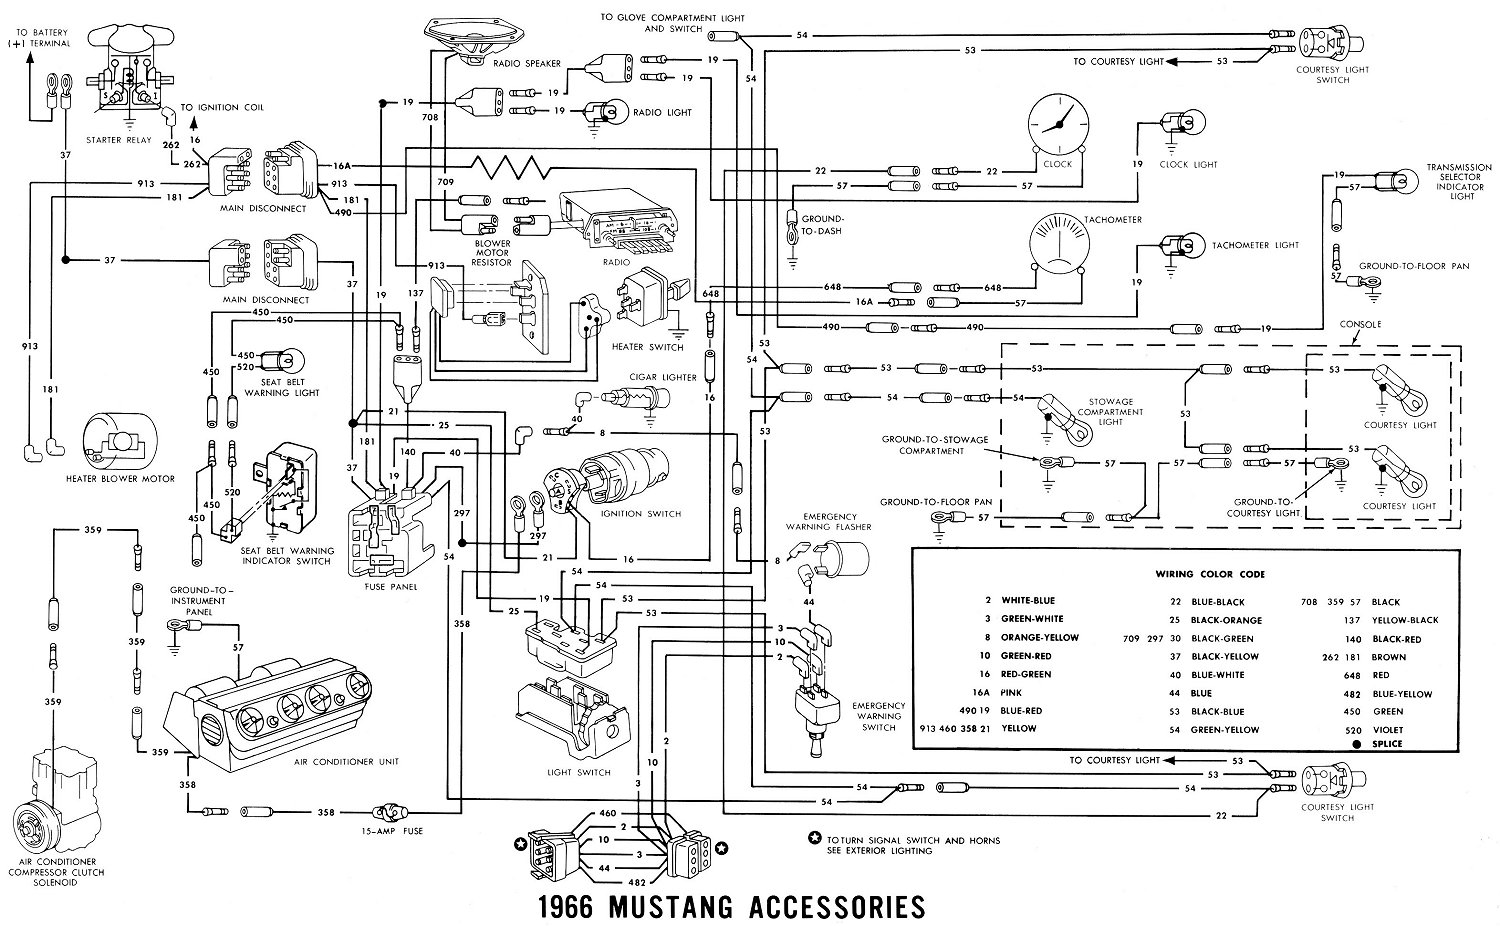 66acces1 1966 mustang wiring diagrams average joe restoration mitsubishi wiring diagrams at nearapp.co